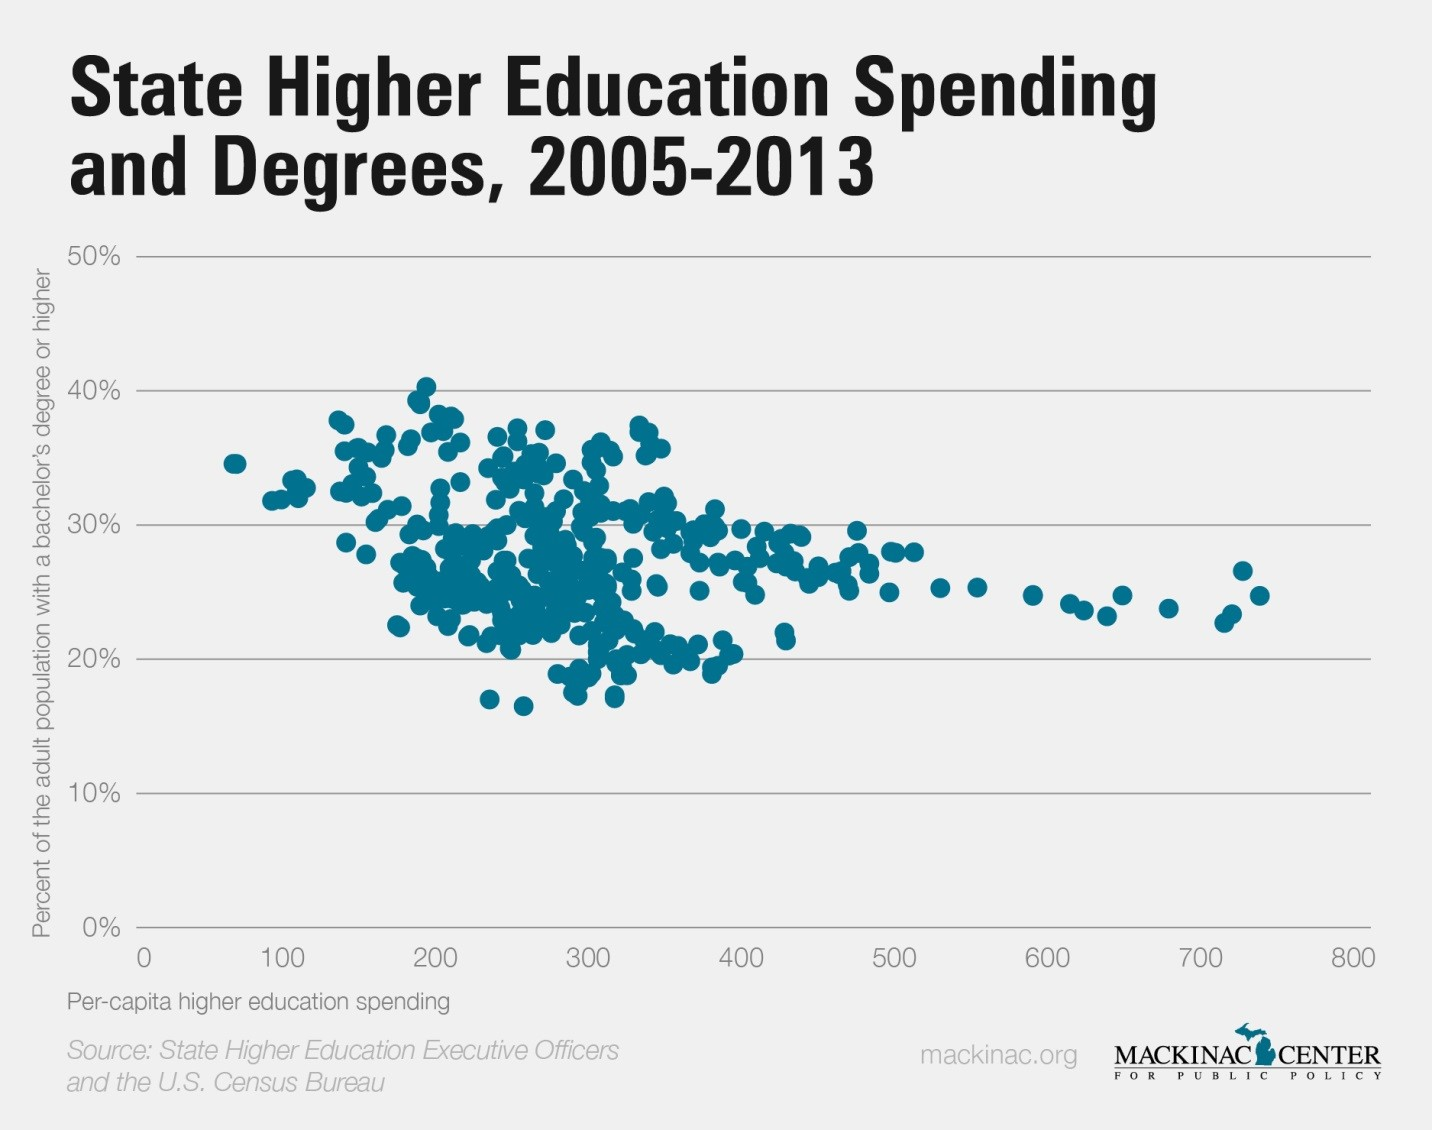 State Higher Education Spending and Degrees, 2005-2013